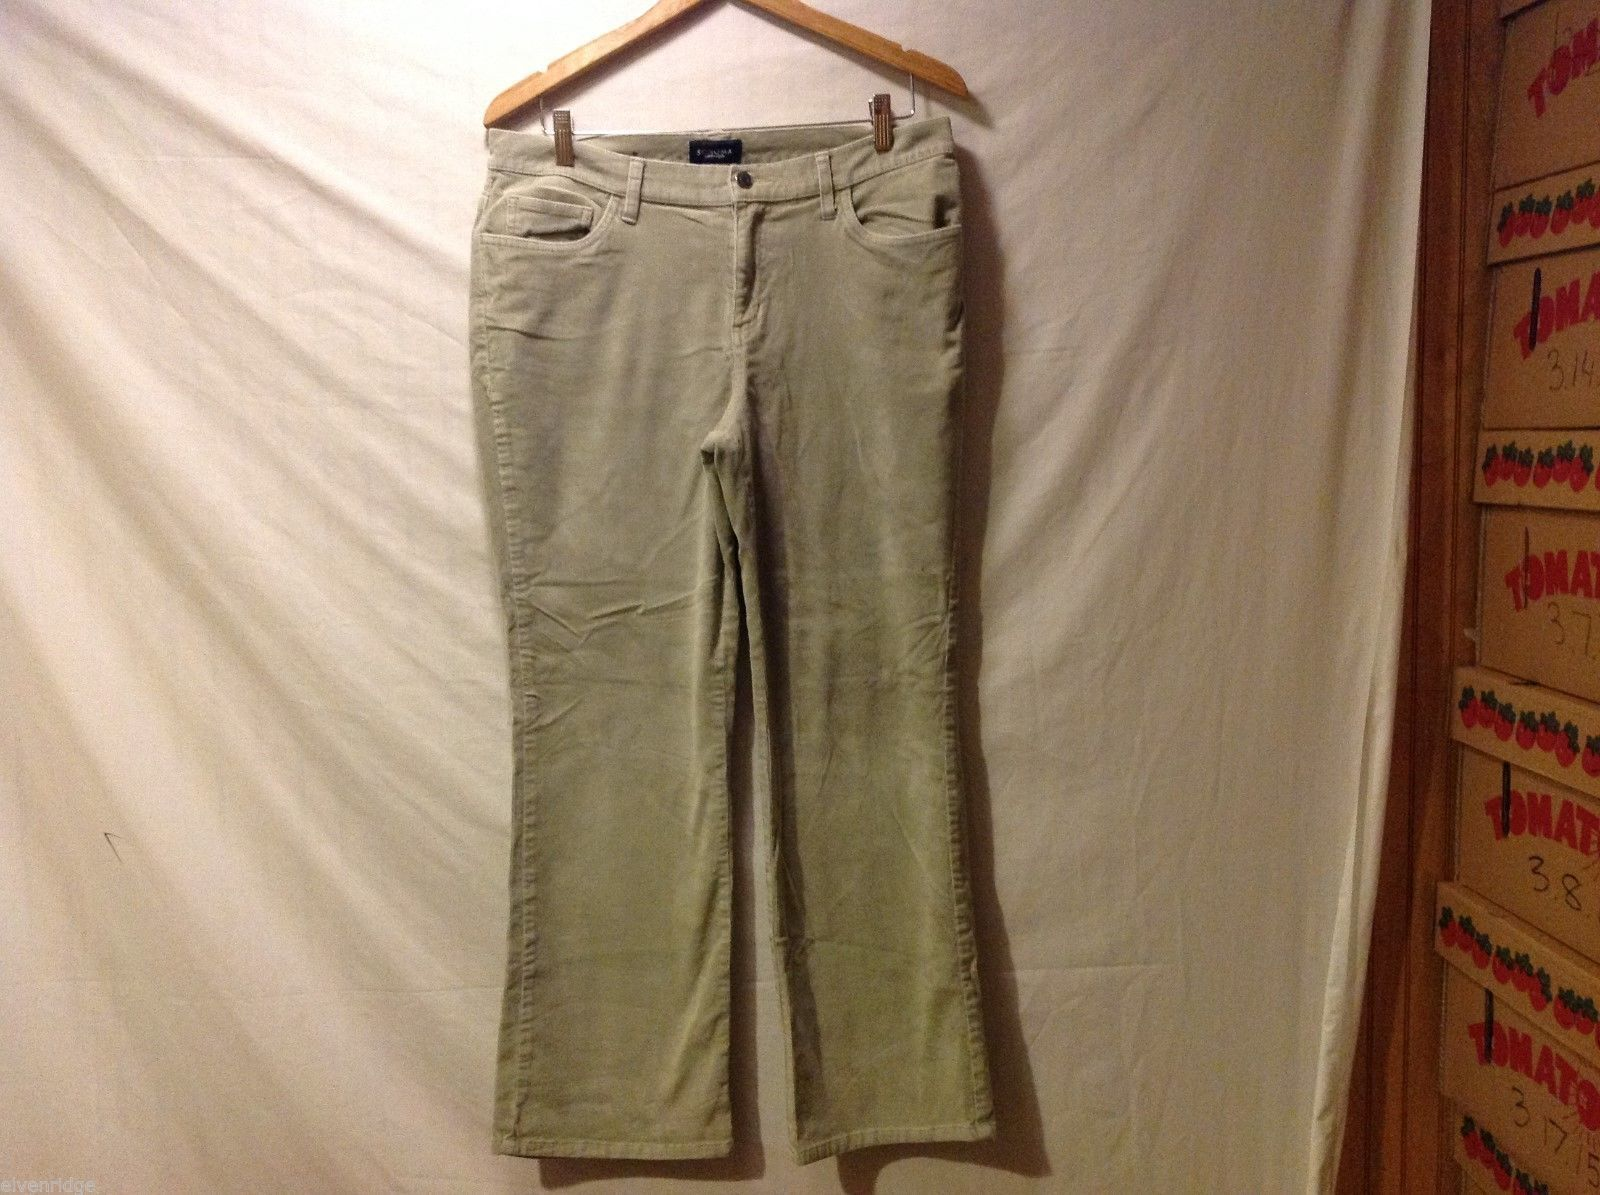 Sonoma Corduroy Womens Light Gray Pants, Size 12 Short